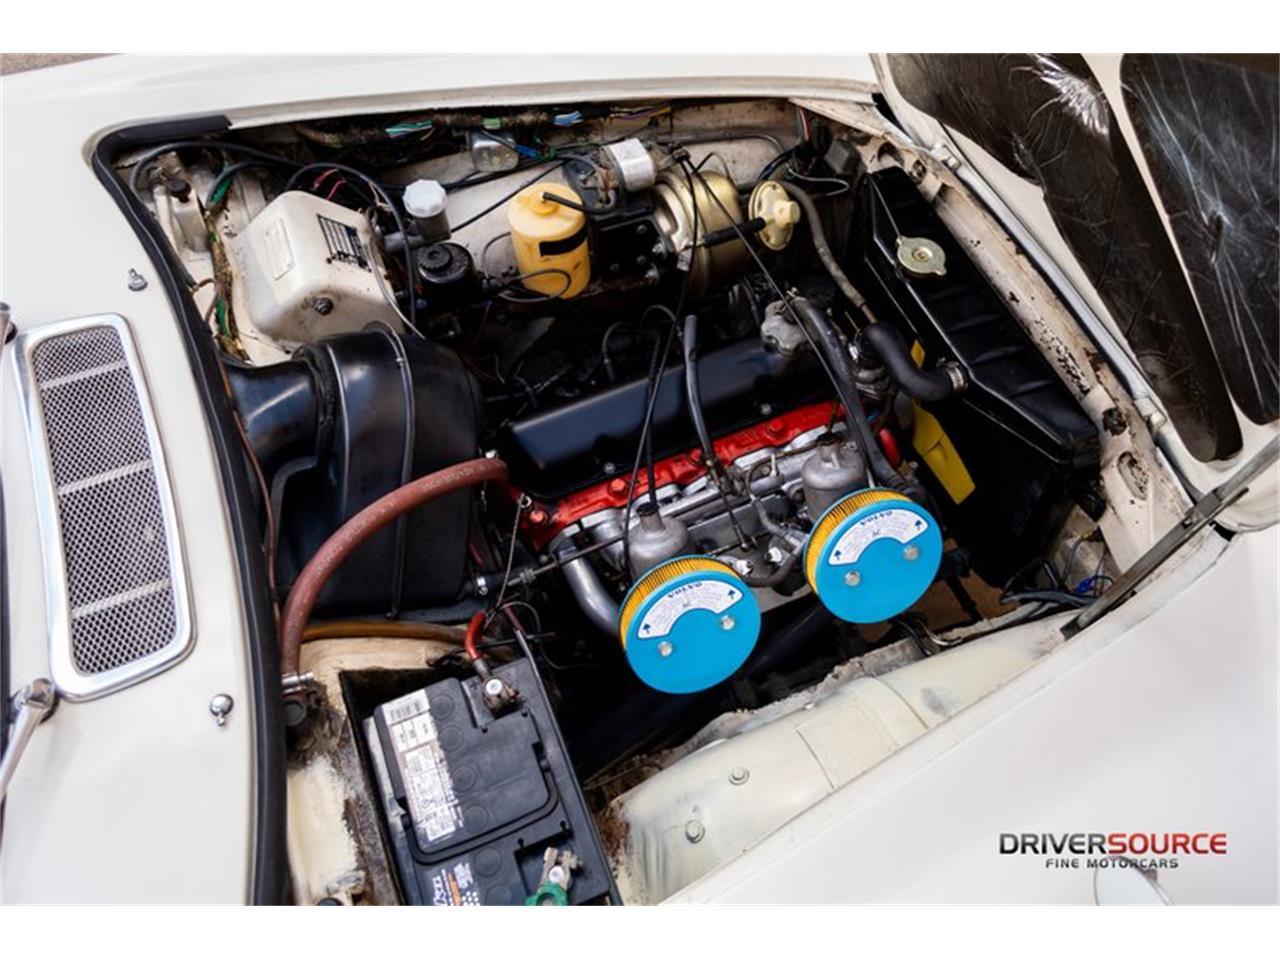 Large Picture of Classic '64 Volvo P1800E located in Texas - $49,250.00 Offered by Driversource - NNM3